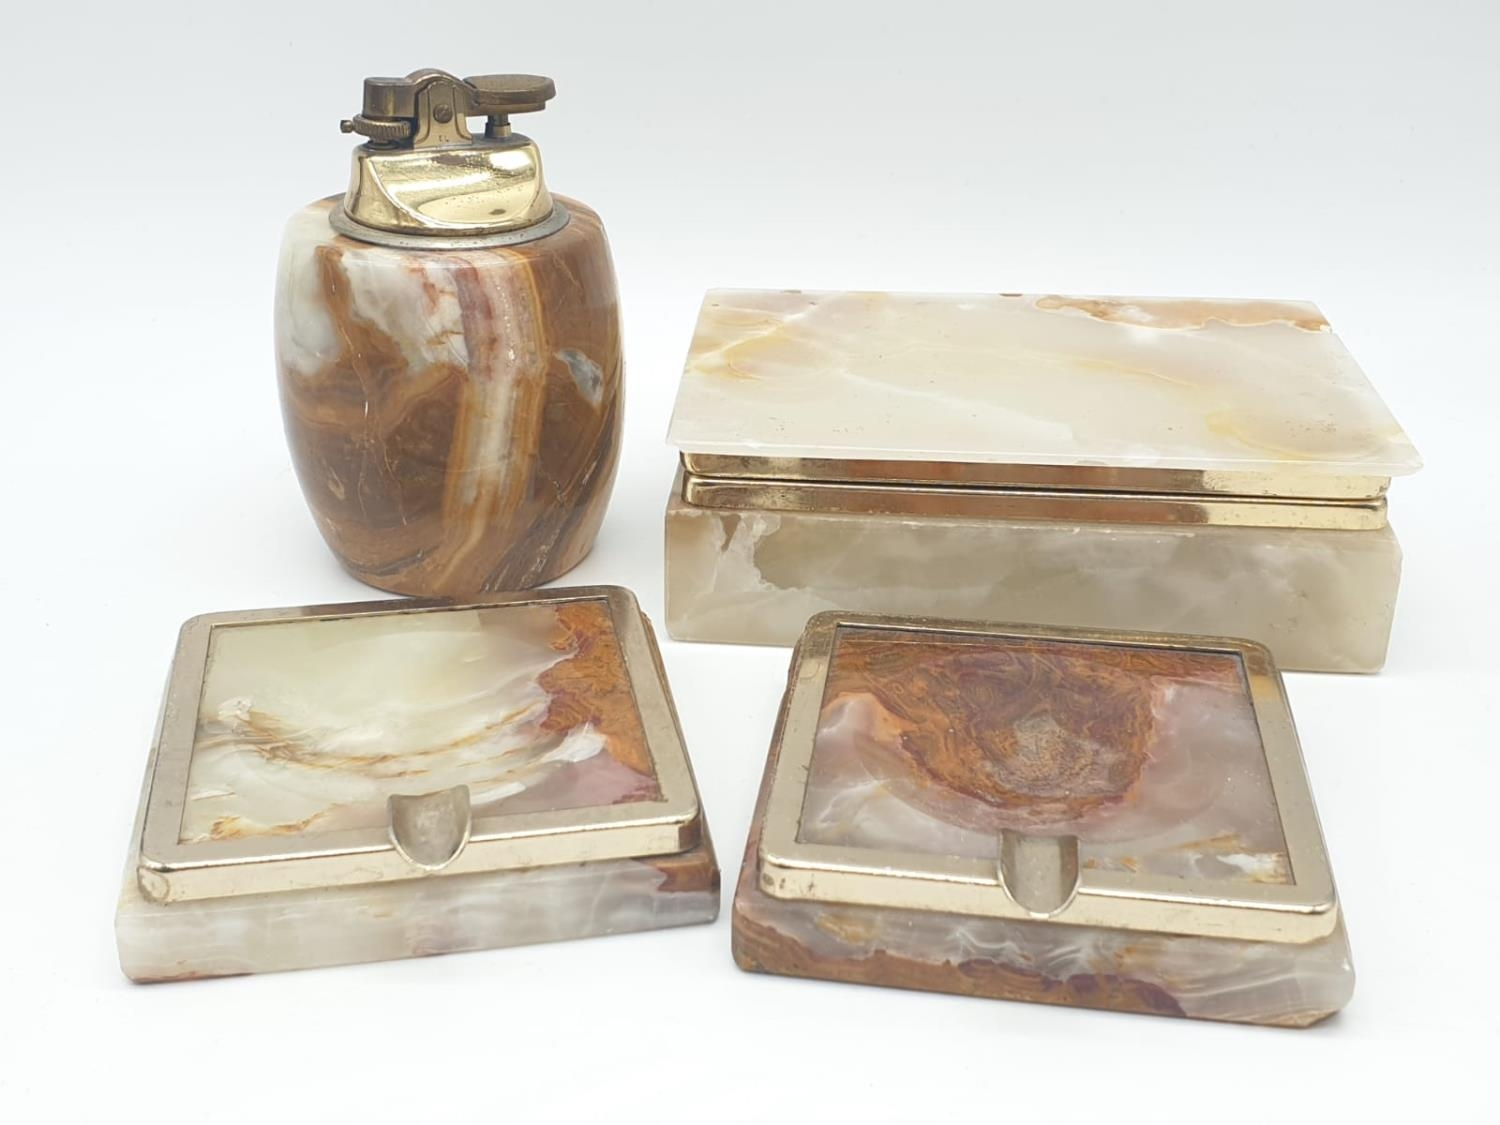 An onyx cigarette box, lighter and 2 onyx ash trays (small chip on cigarette box lid).